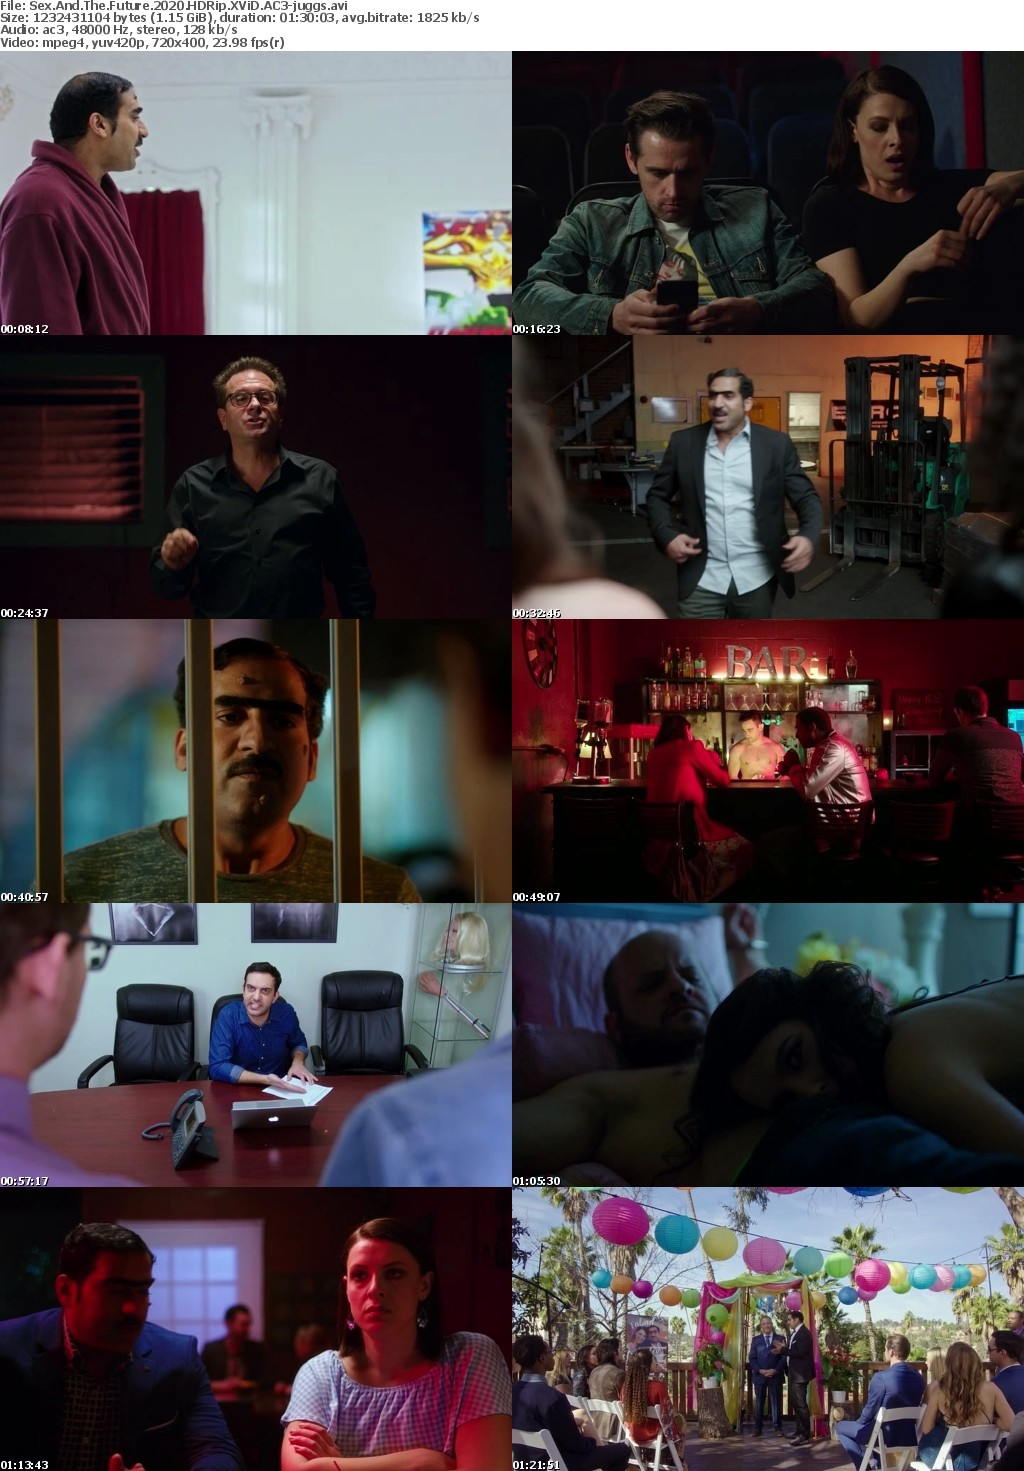 Sex And The Future (2020) HDRip XViD AC3-juggs